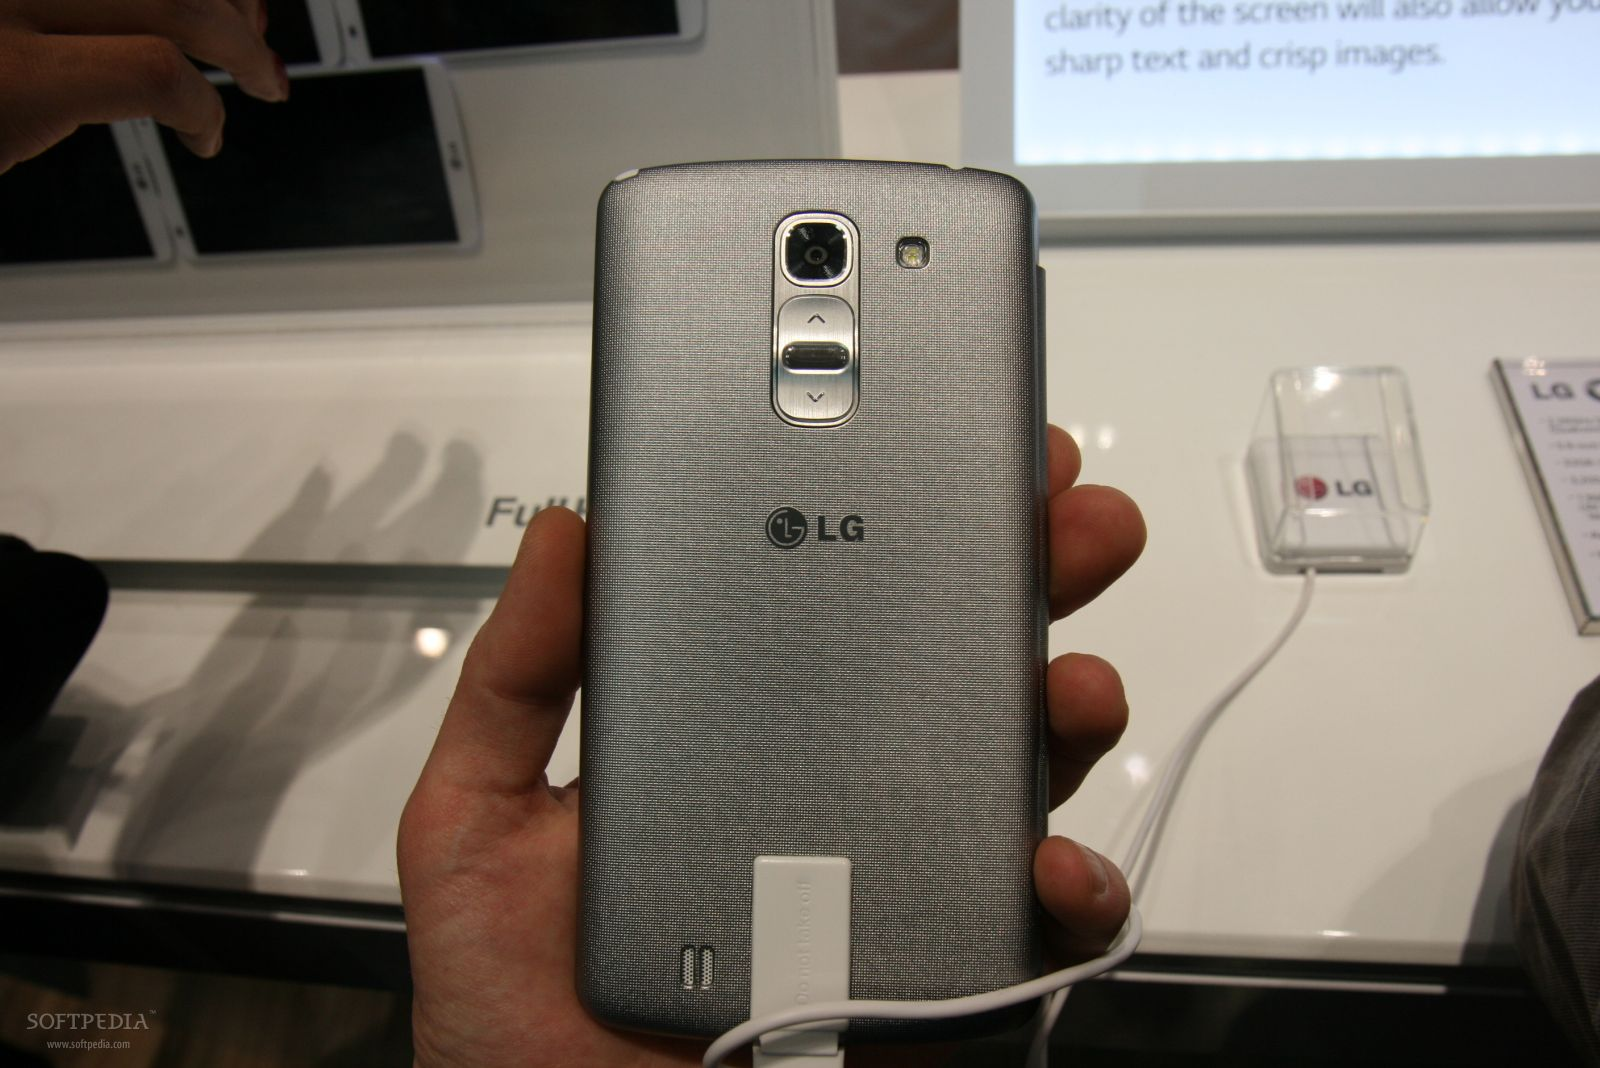 LG G3 Expected to Arrive in June, Sample Image Leaks Online